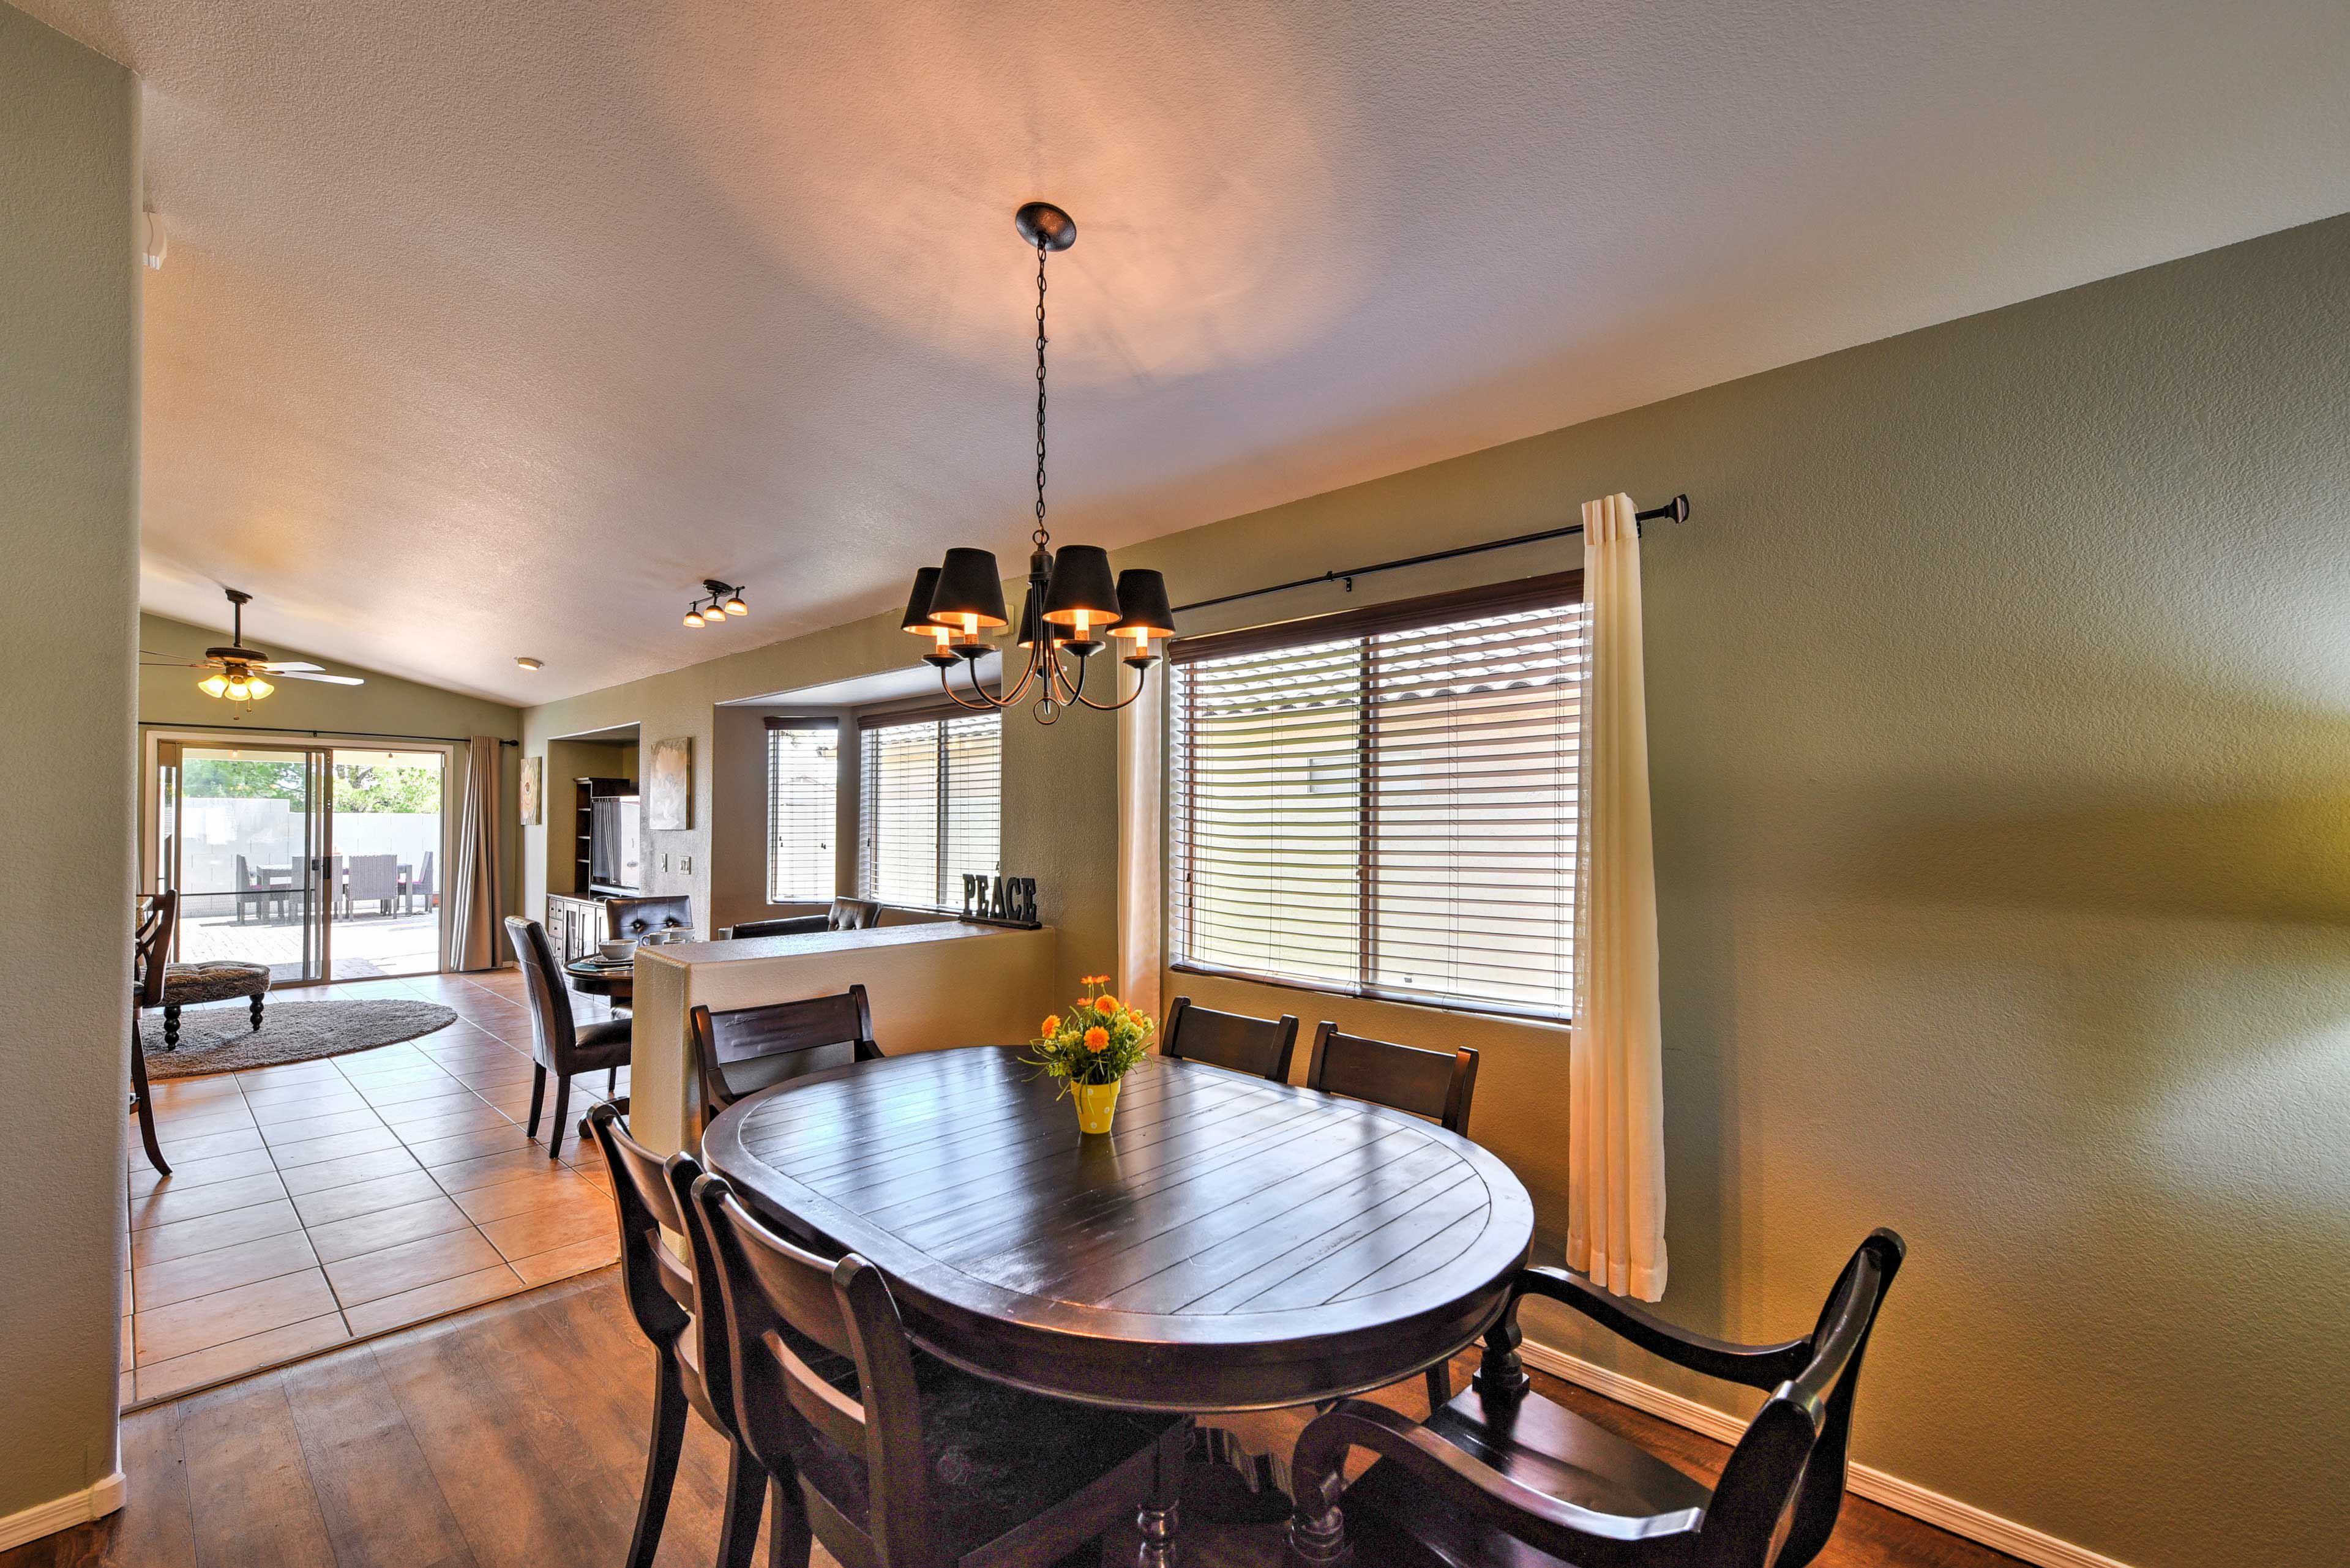 Settle down for a nice afternoon dinner at this 6-person dining table.